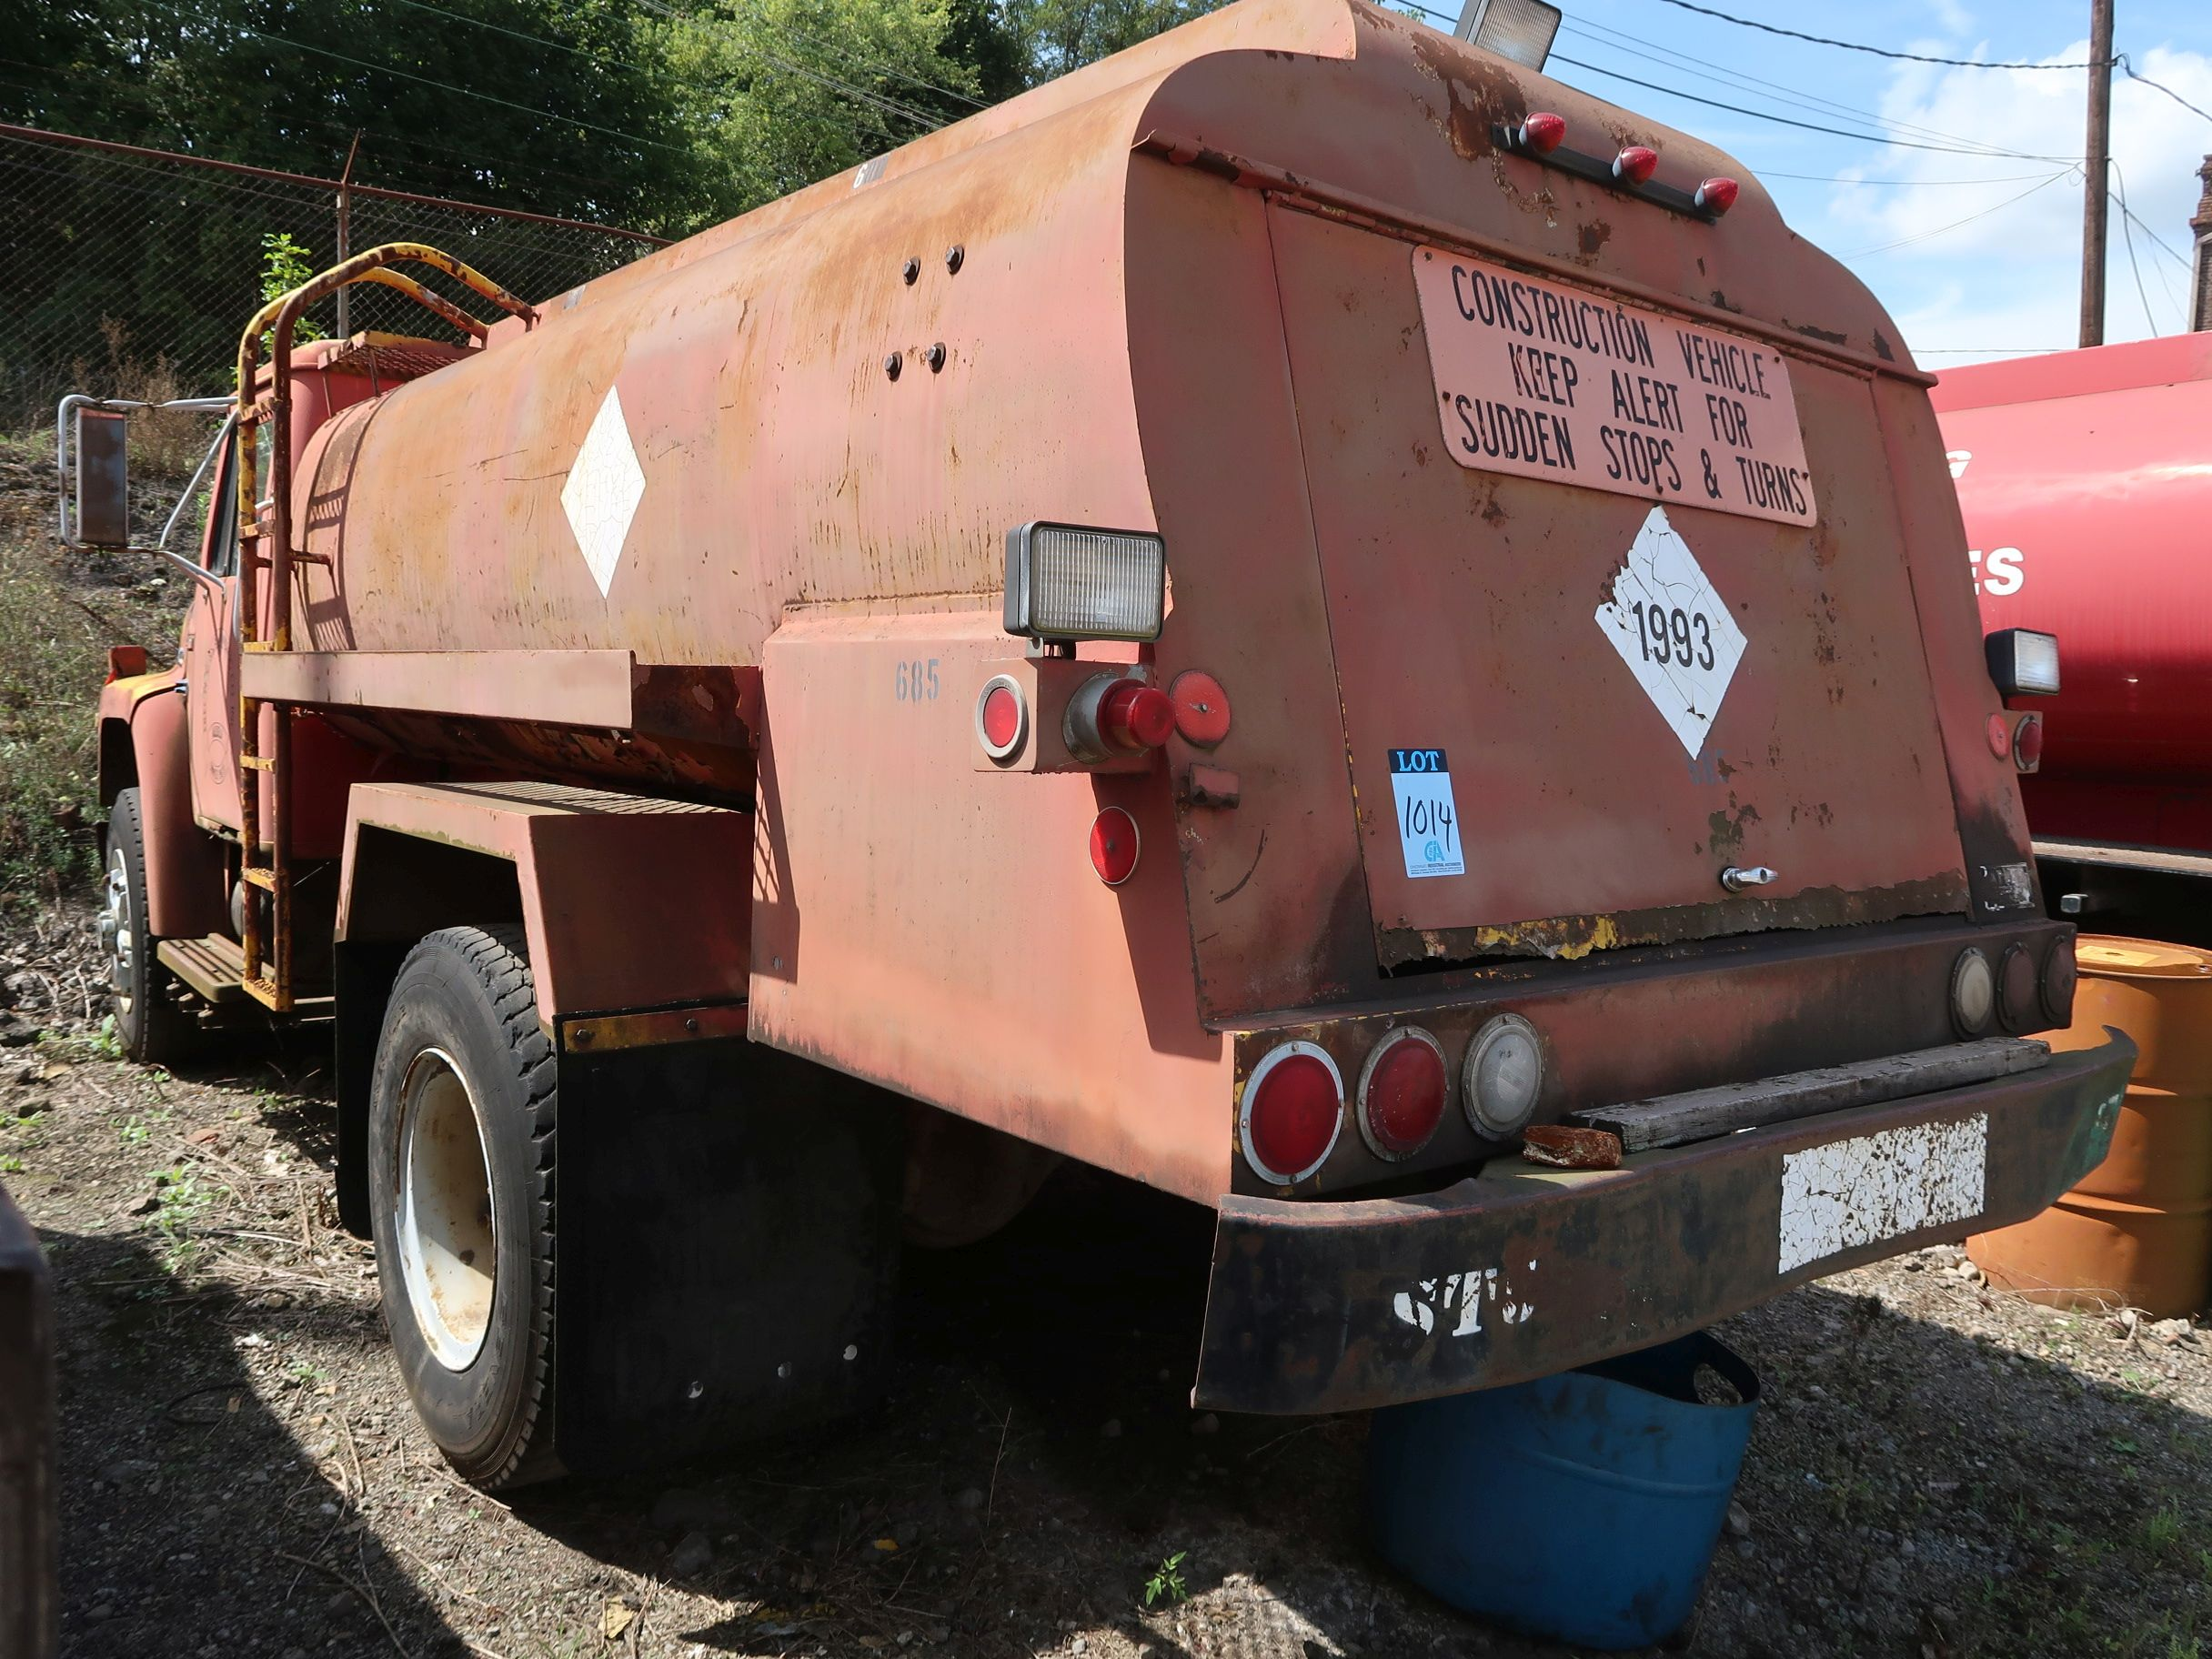 Lot 1014 - 1983 INTERNATIONAL FUEL TRUCK; VIN AA172KH1588, 800 GALLON FUEL TANK (UNIT 685) *OUT OF SERVICE* (NO